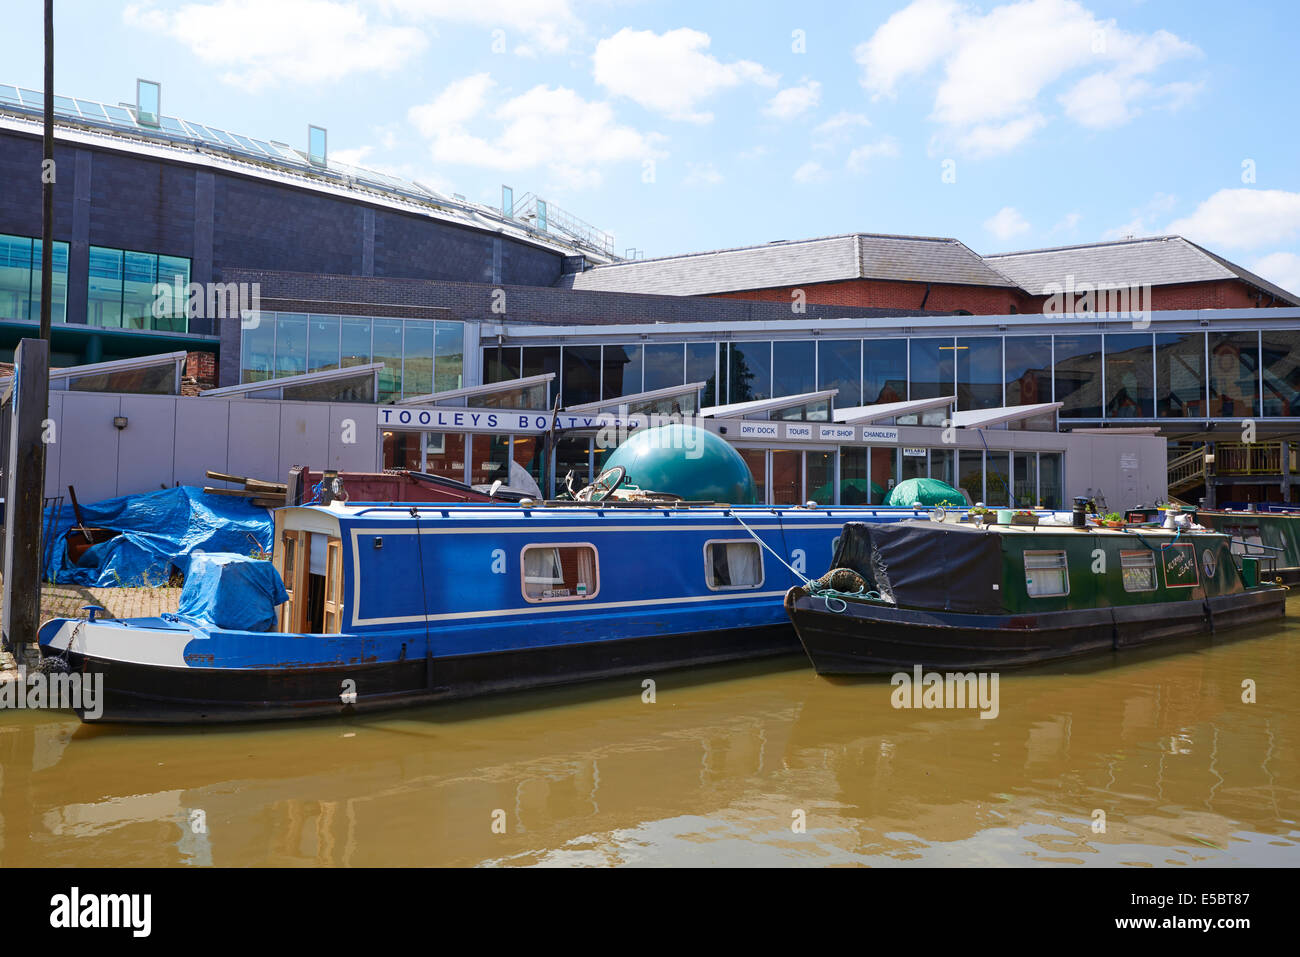 Tooley's Boatyard The Oldest Working Inland Waterway Dry Dock Banbury Oxfordshire UK - Stock Image